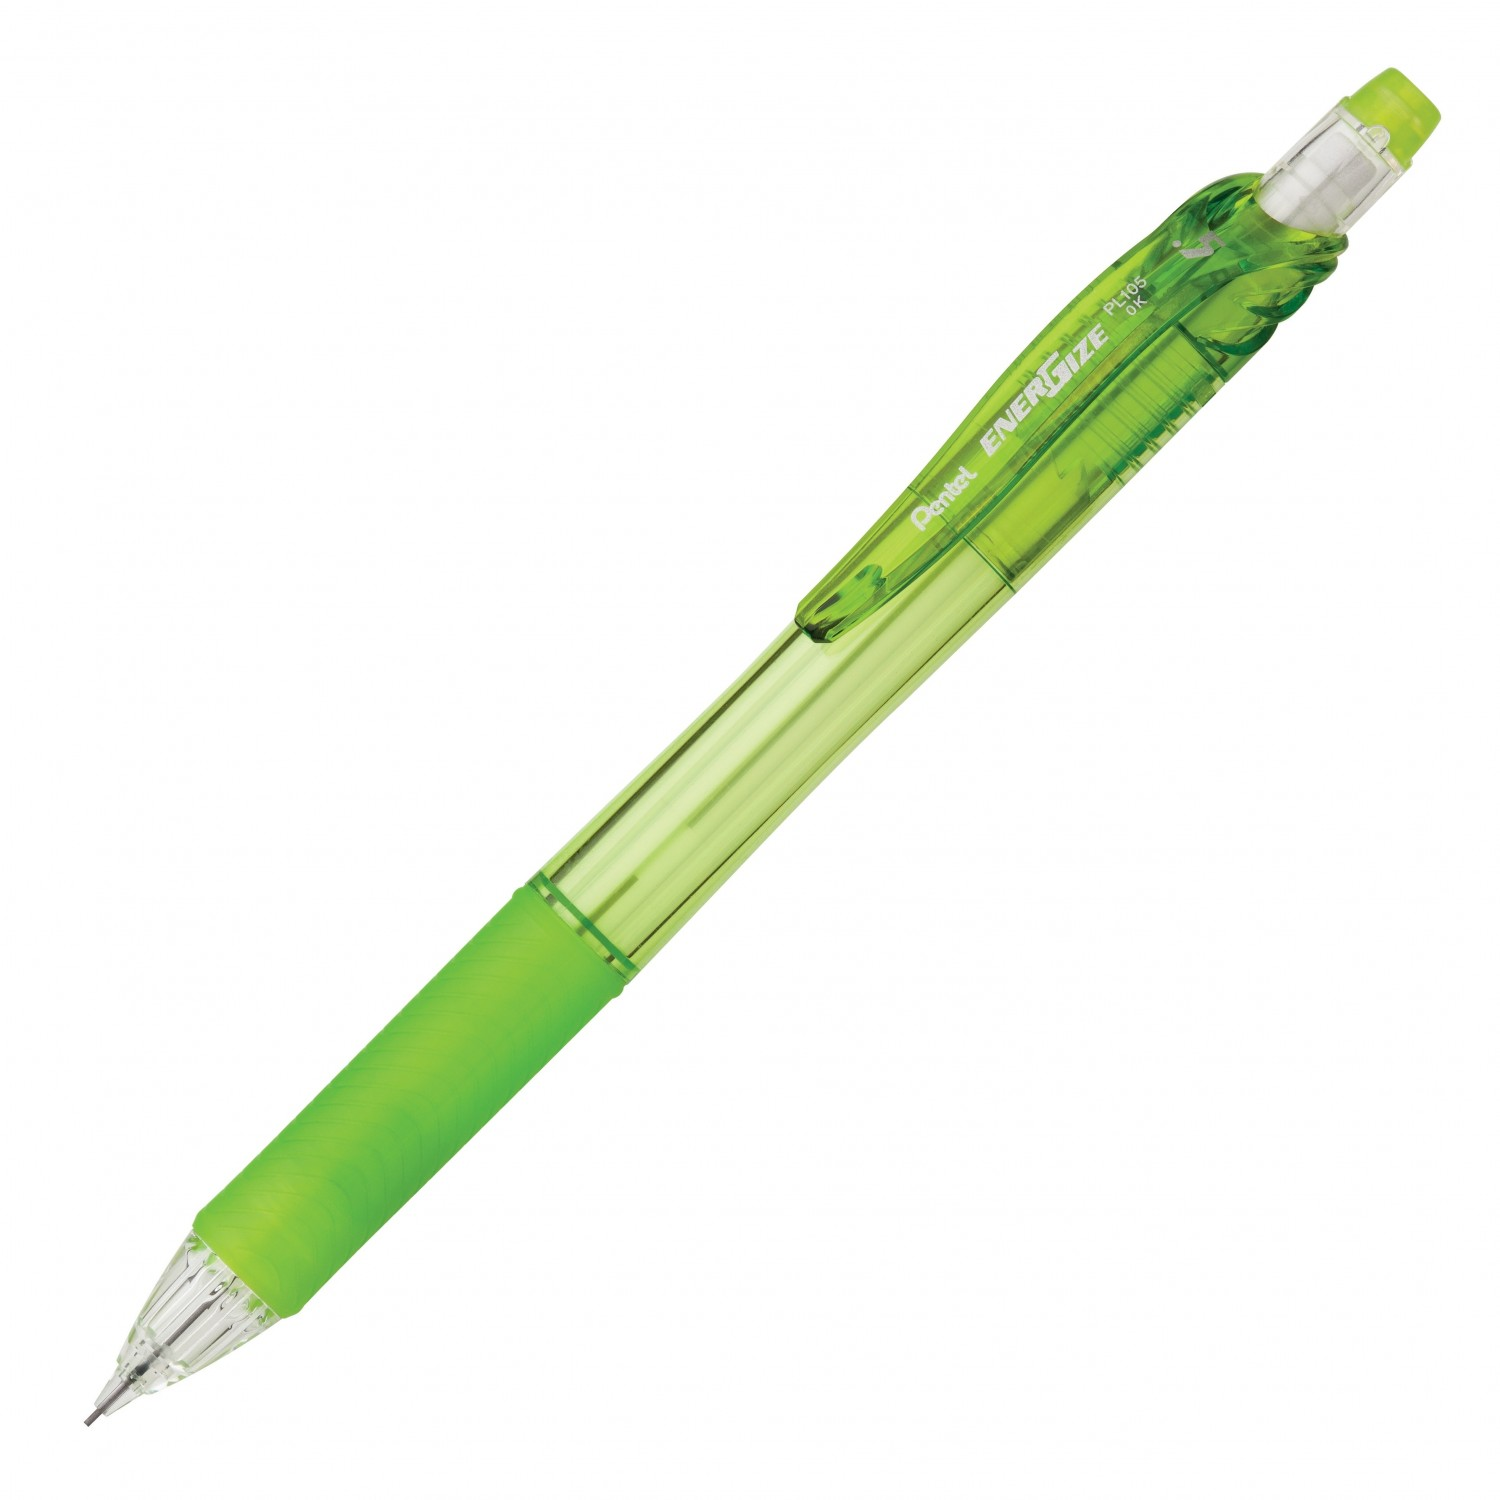 Pentel EnerGize-X Mechanical Pencil (0.5mm) Light Green Barrel